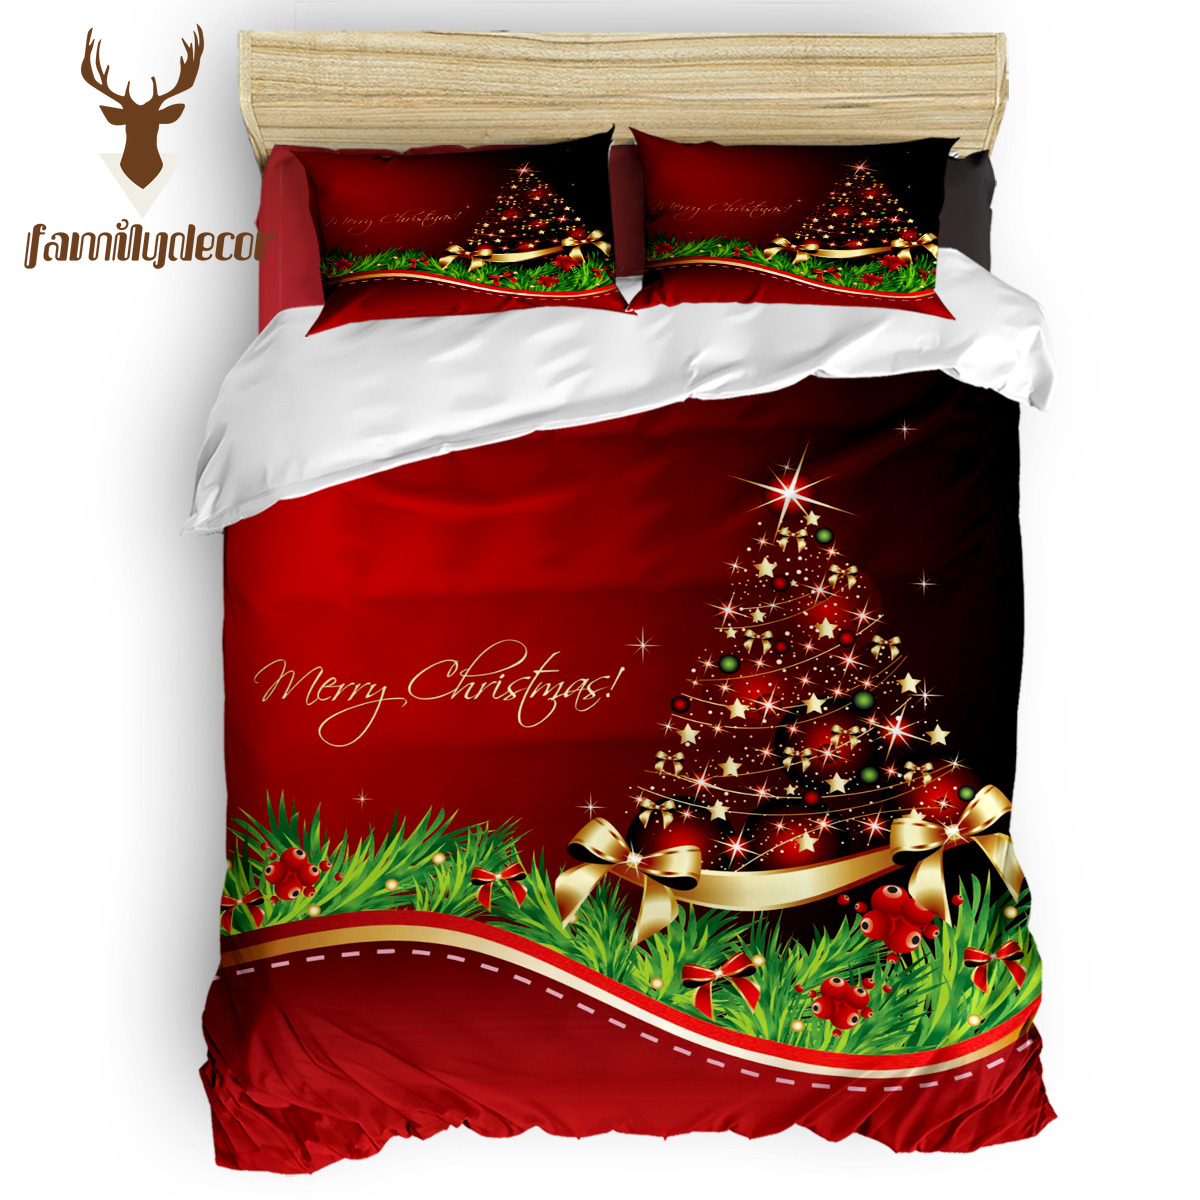 Family Decor Merry Christmas Tree 4 Pcs Comforter Cover Set Eve Of All Saint's Day 4 Piece Bedding Sets April Fool's Day Living